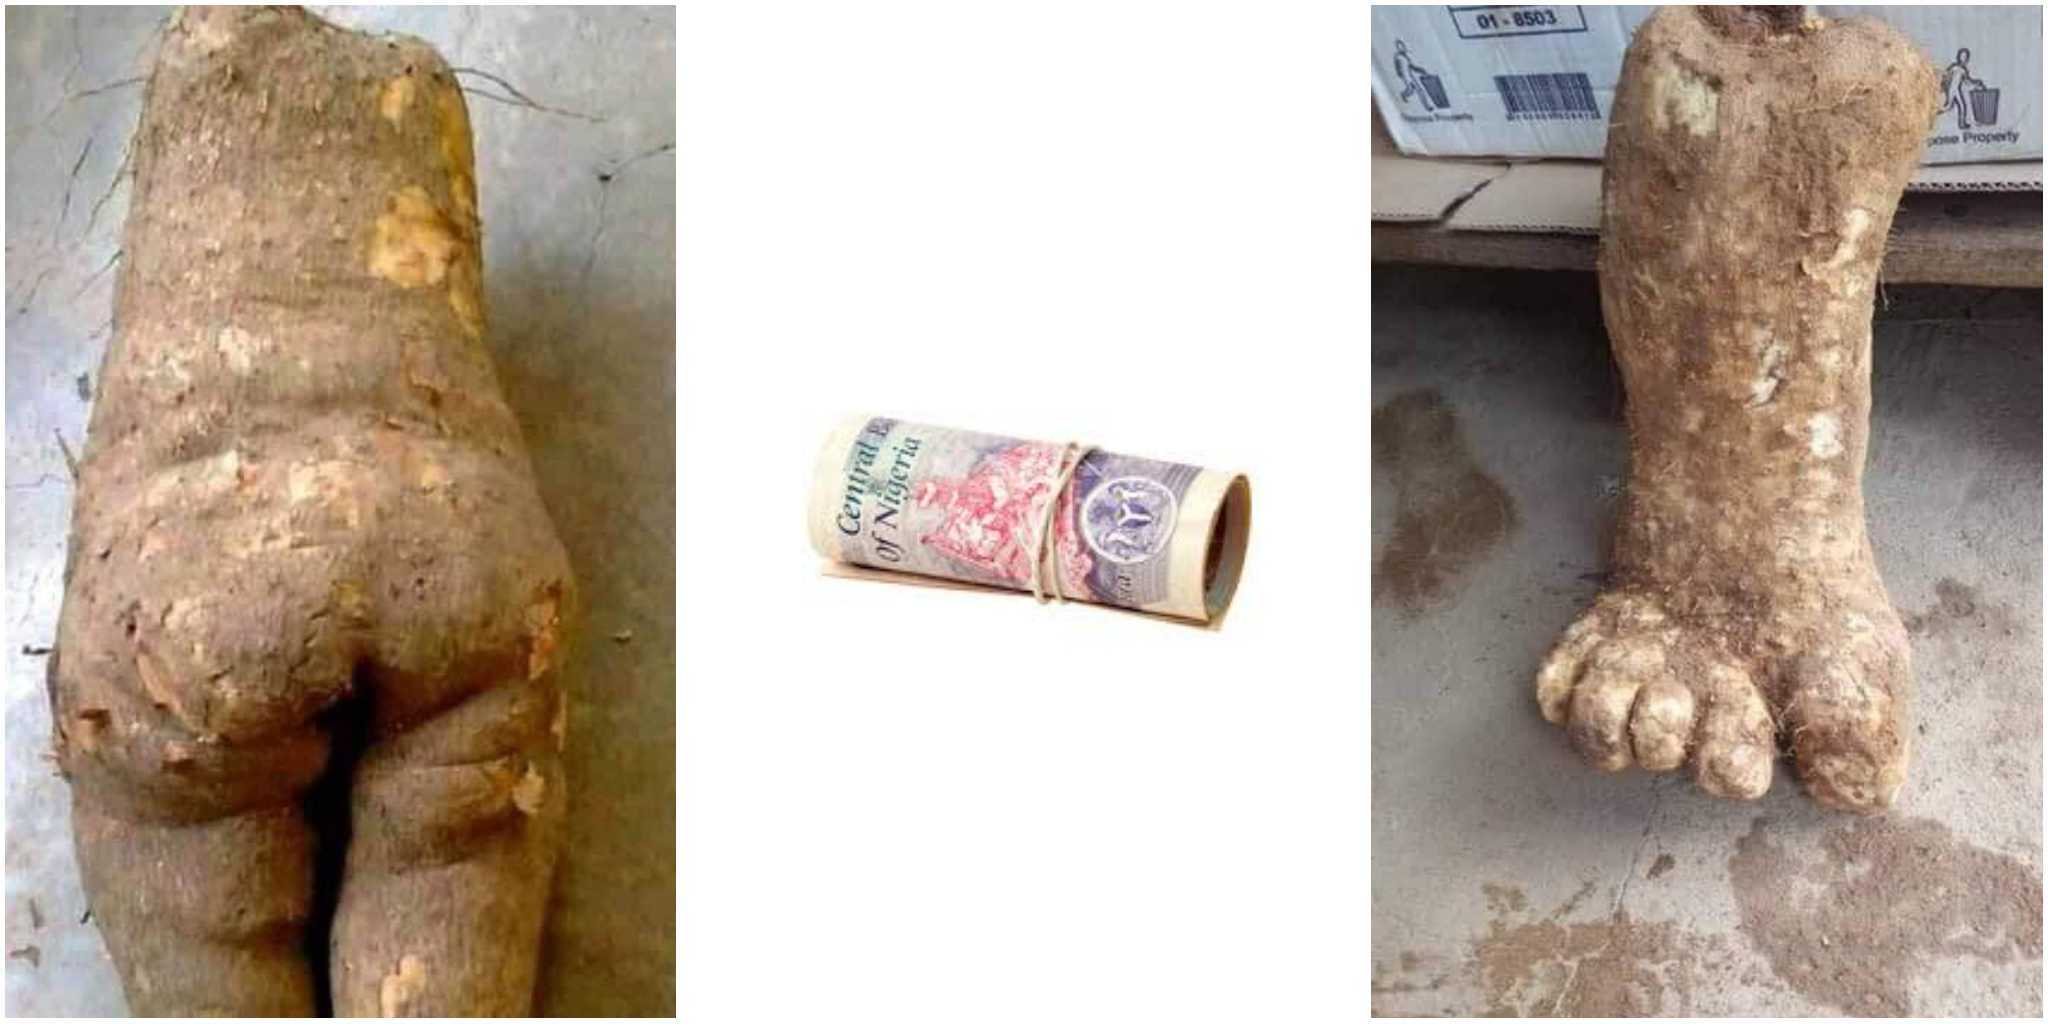 How To Pick Money From The Floor Without Turning To Yam | Zikoko!